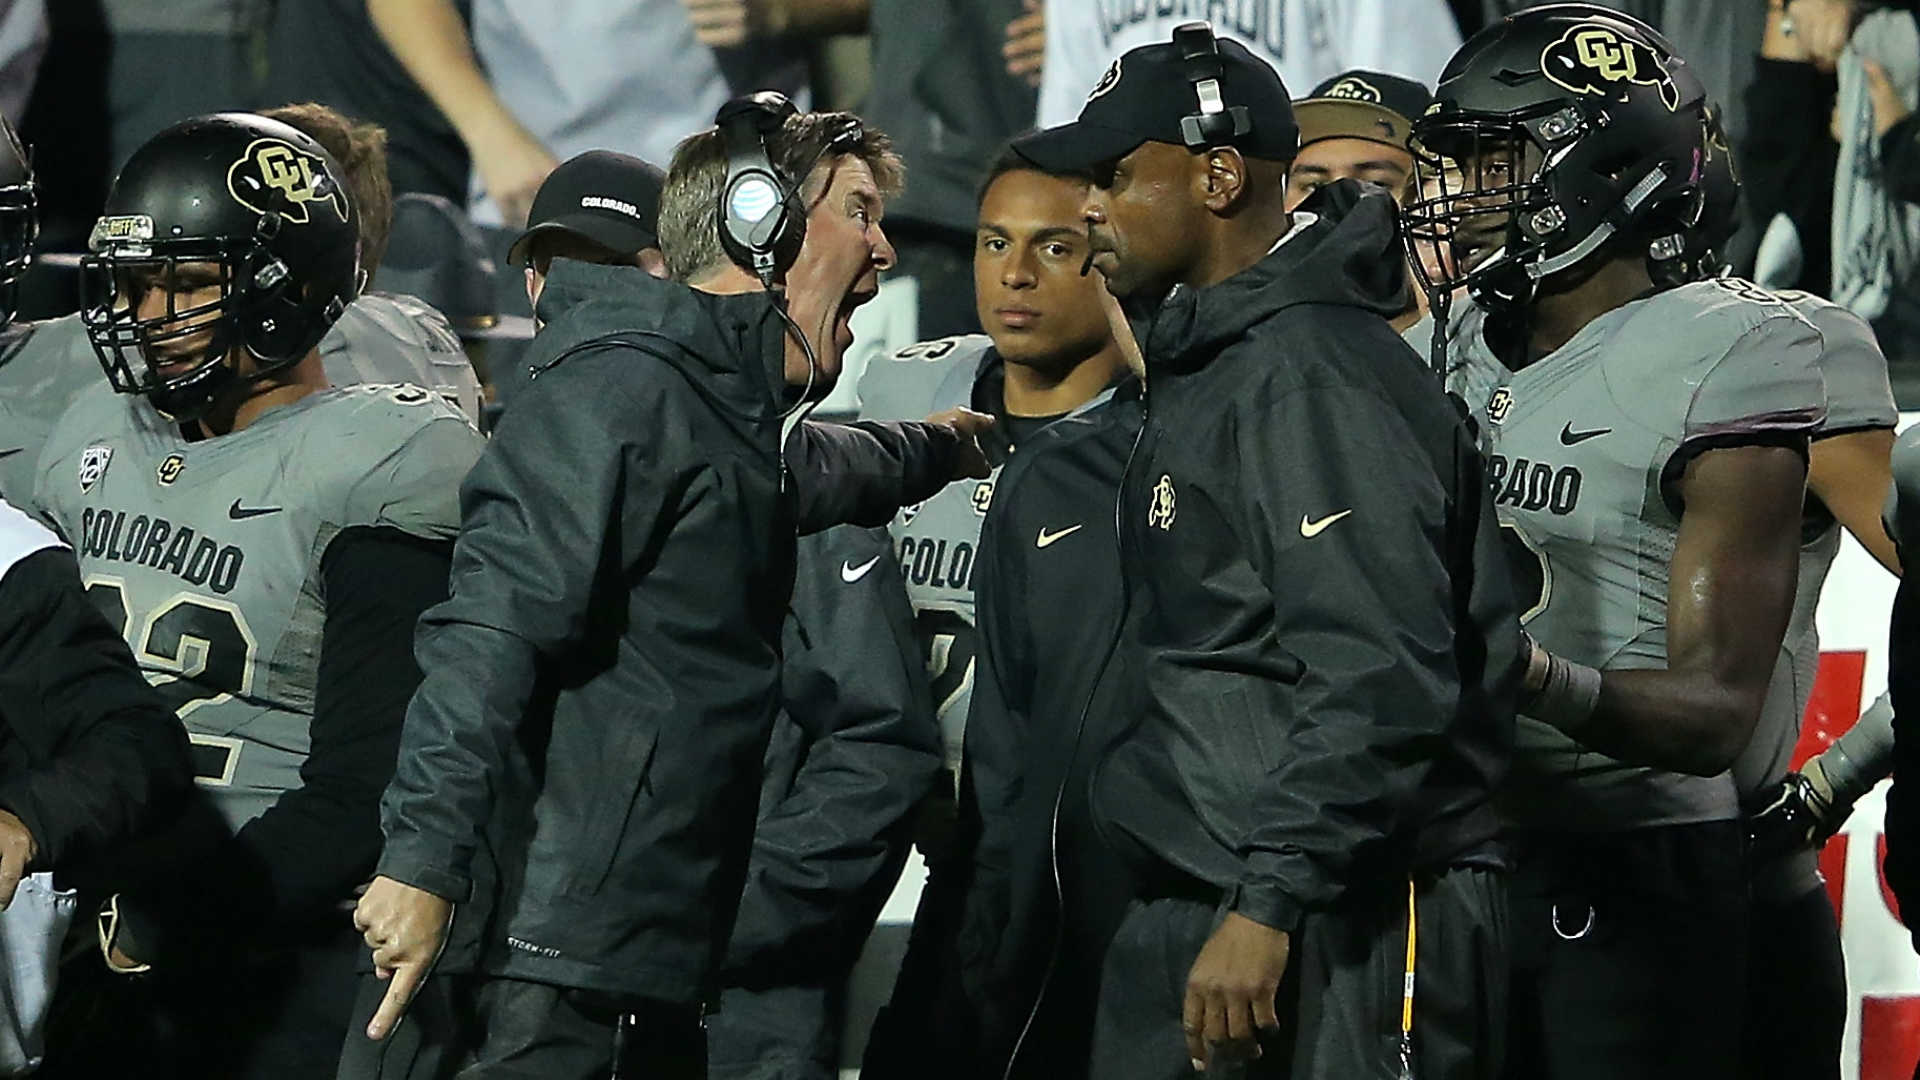 Joe Tumpkin, CU Buffs assistant coach, resigns ahead of expected criminal charges